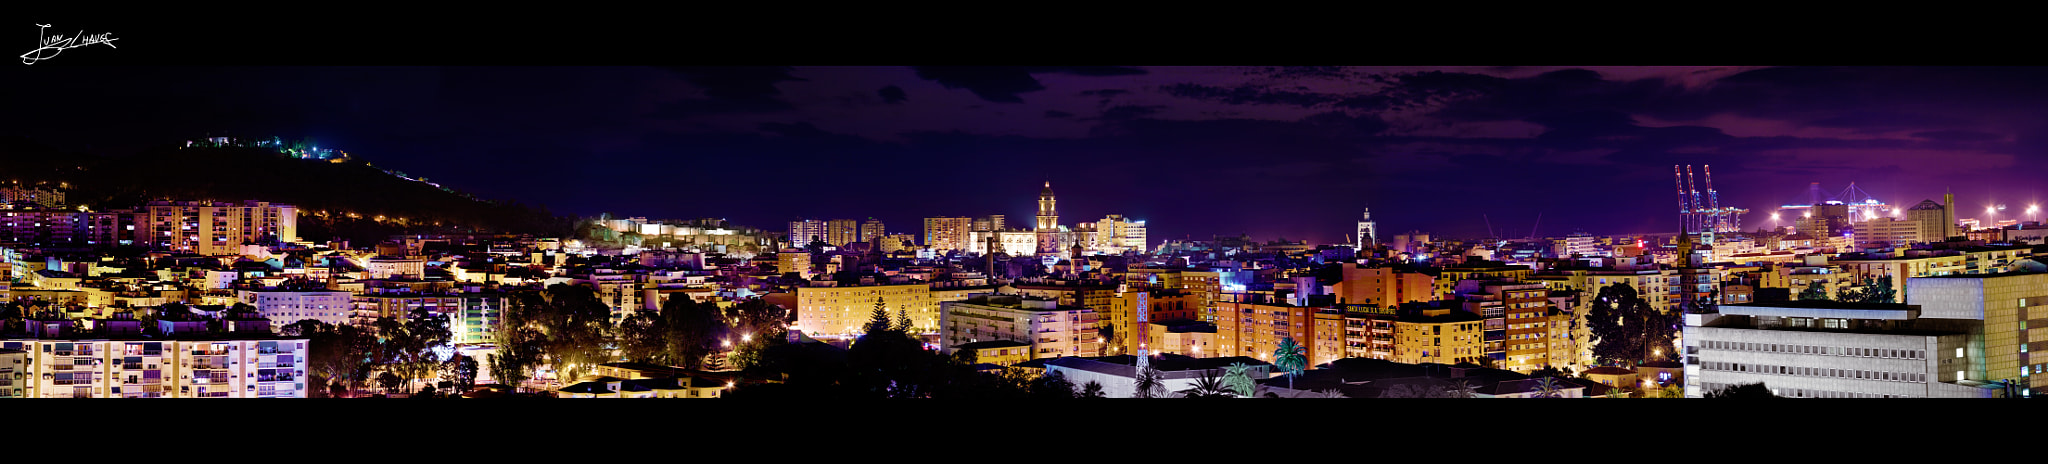 Photograph Panorámica nocturna de Málaga by Juan Chaves on 500px